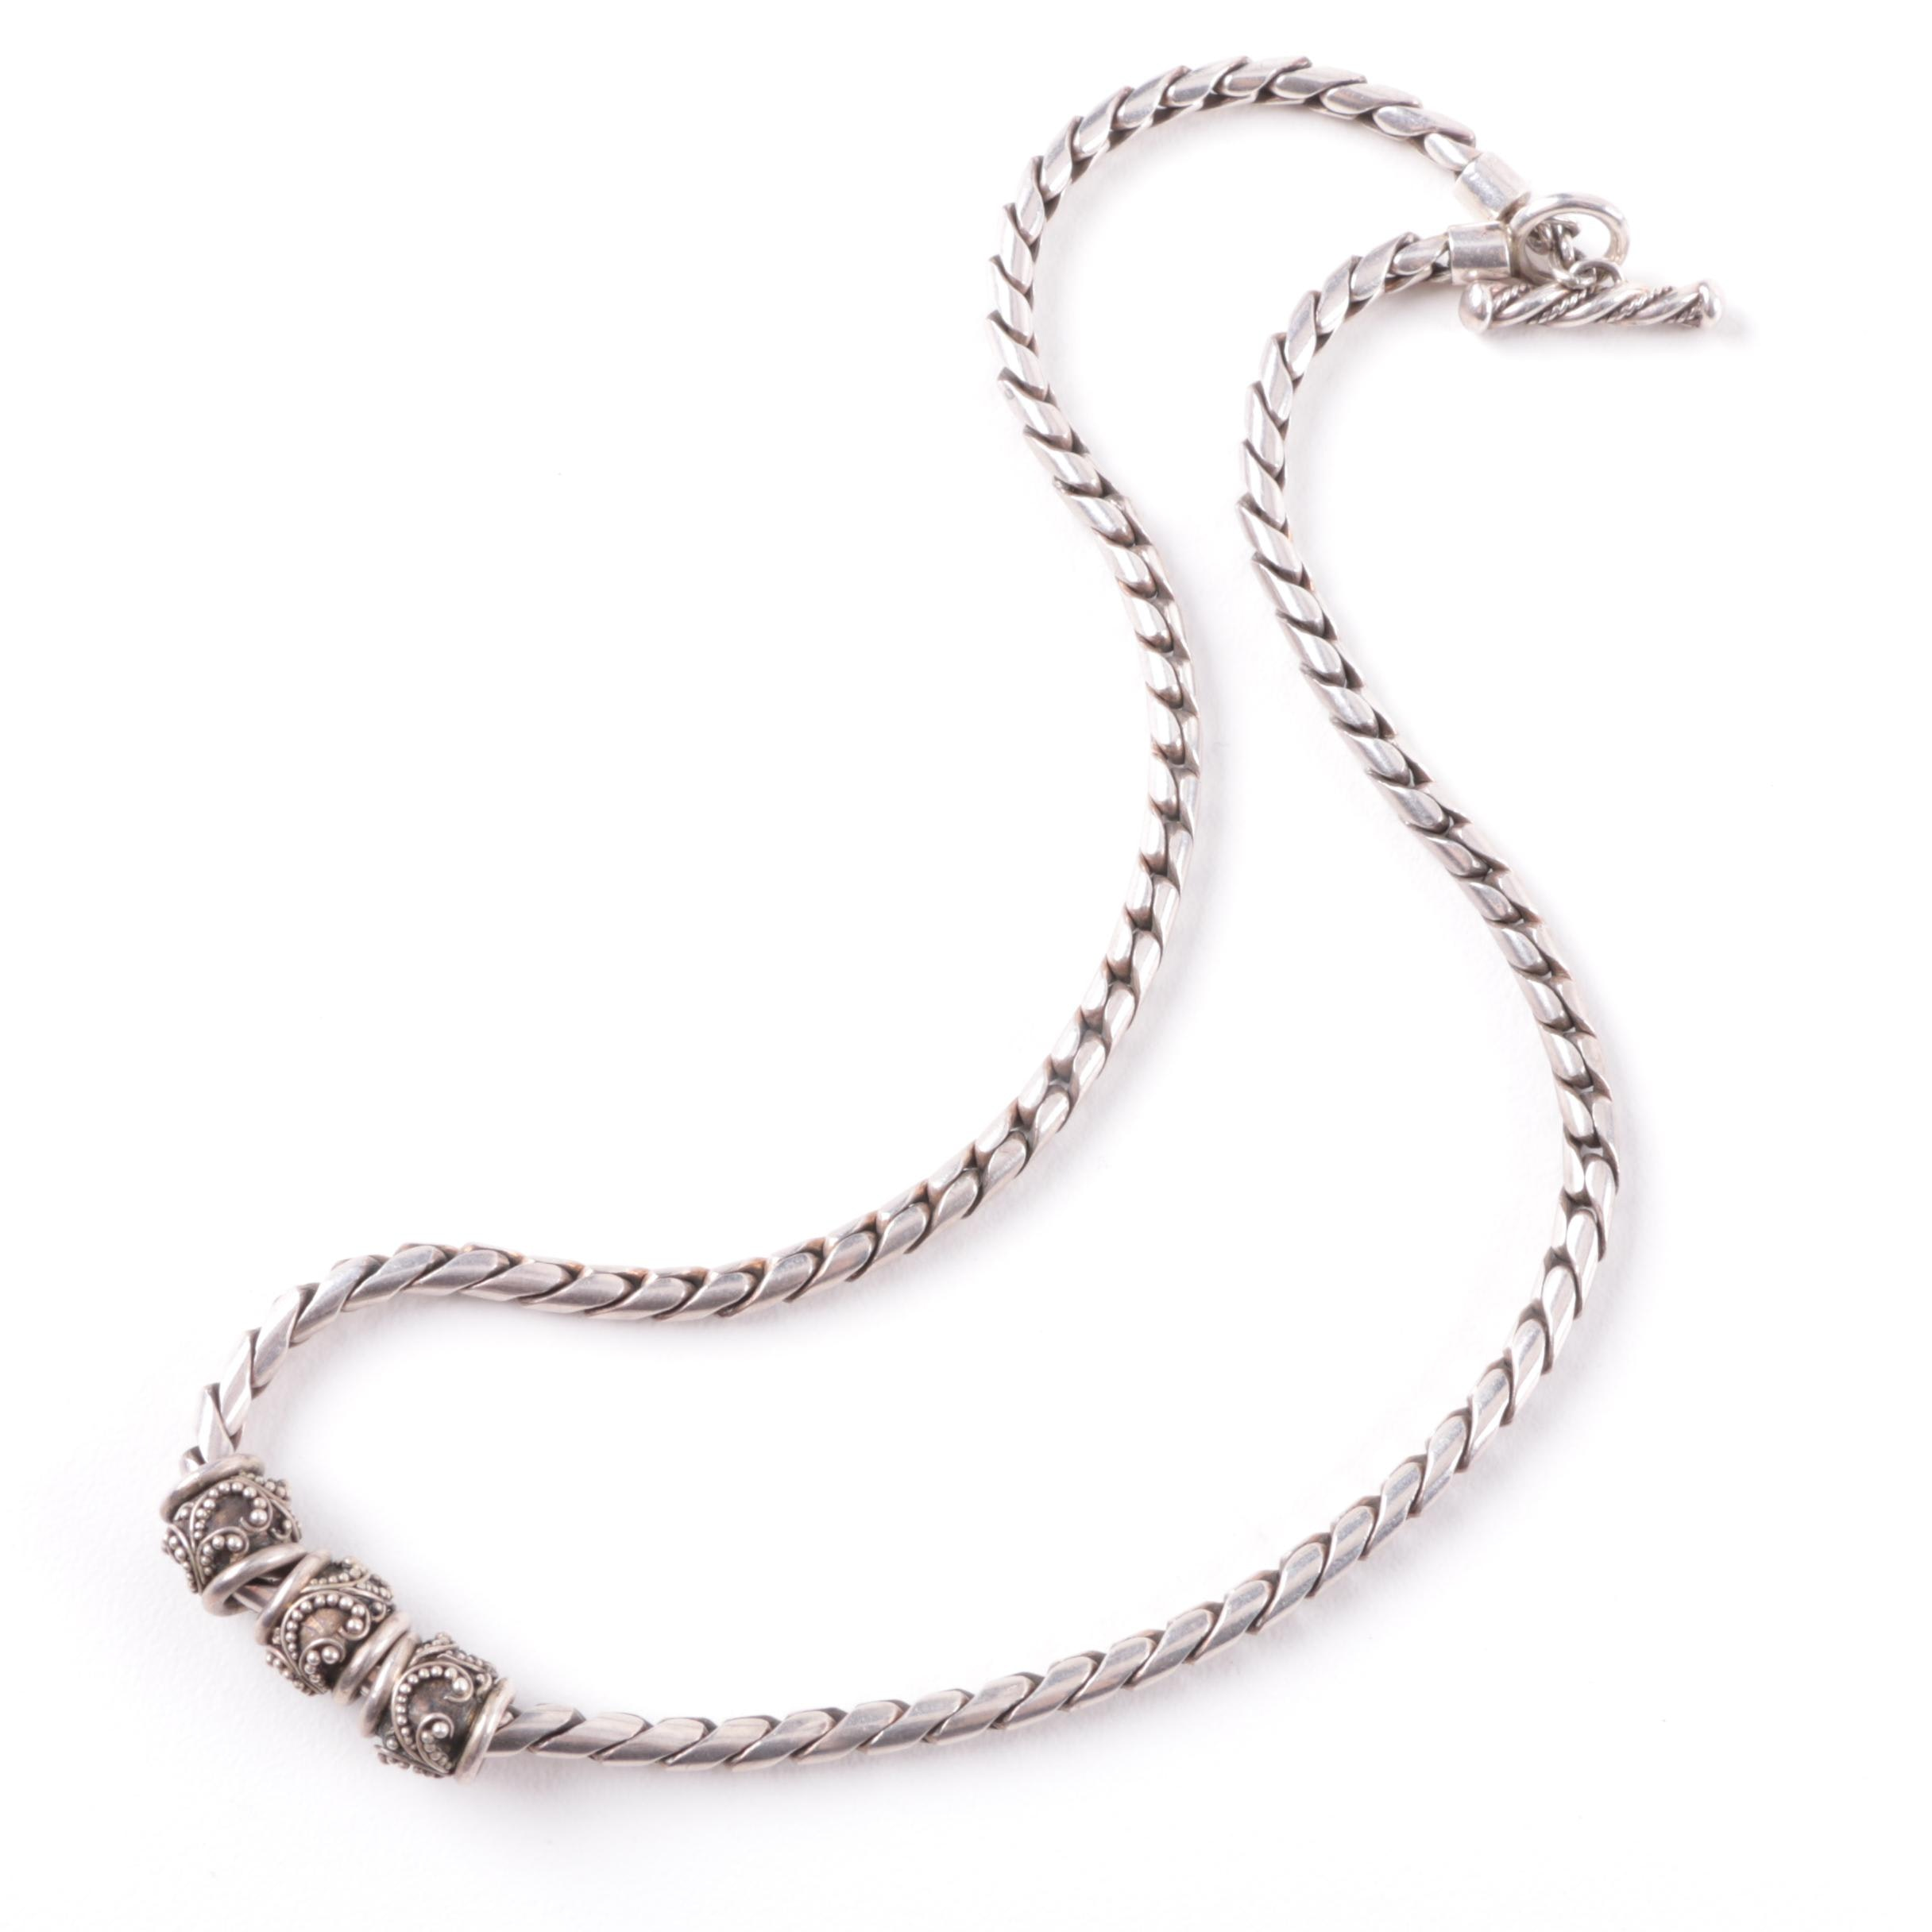 Sterling Silver Link Necklace with Sliding Granulated Pendants